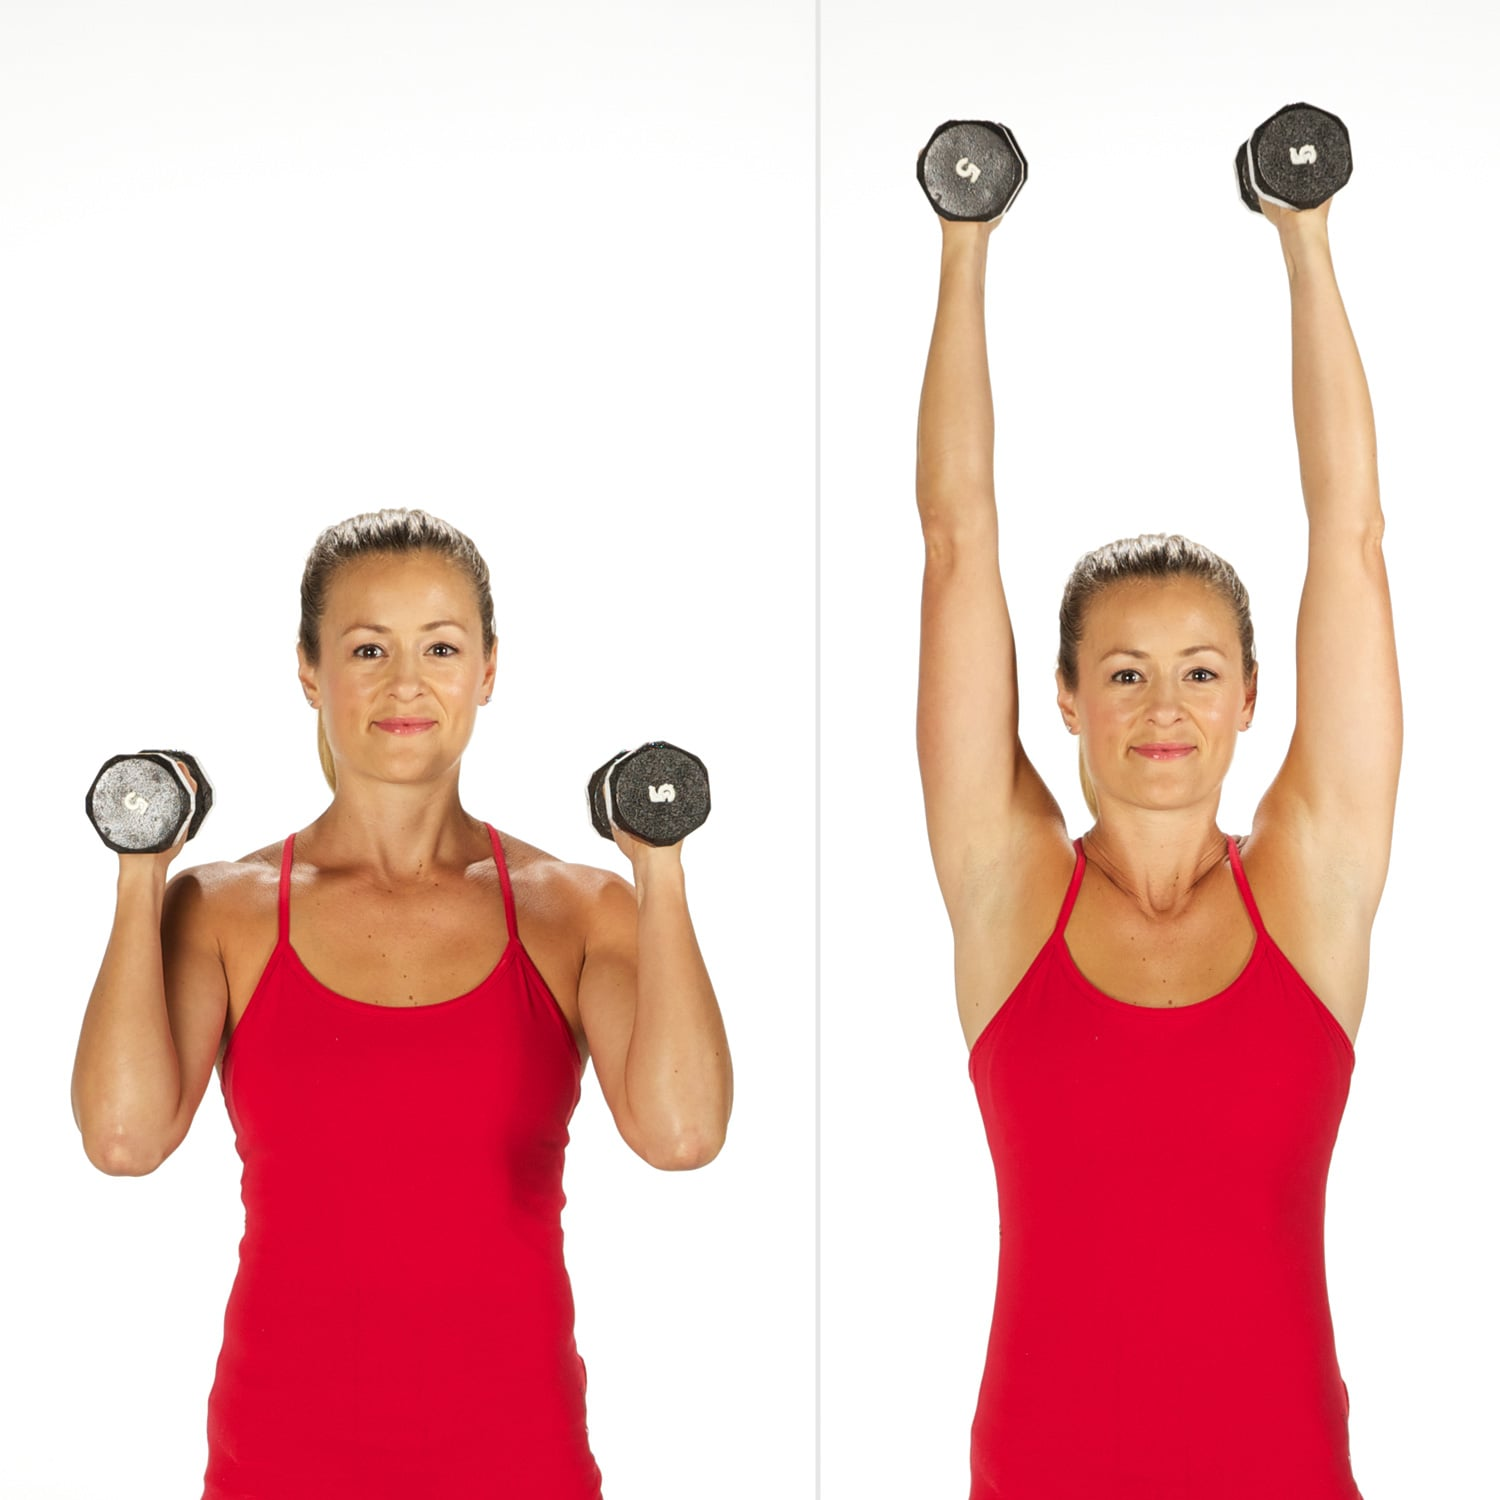 Overhead Shoulder Press   Sculpt and Strengthen Your Arms With This 3-Week  Dumbbell Challenge   POPSUGAR Fitness Photo 4